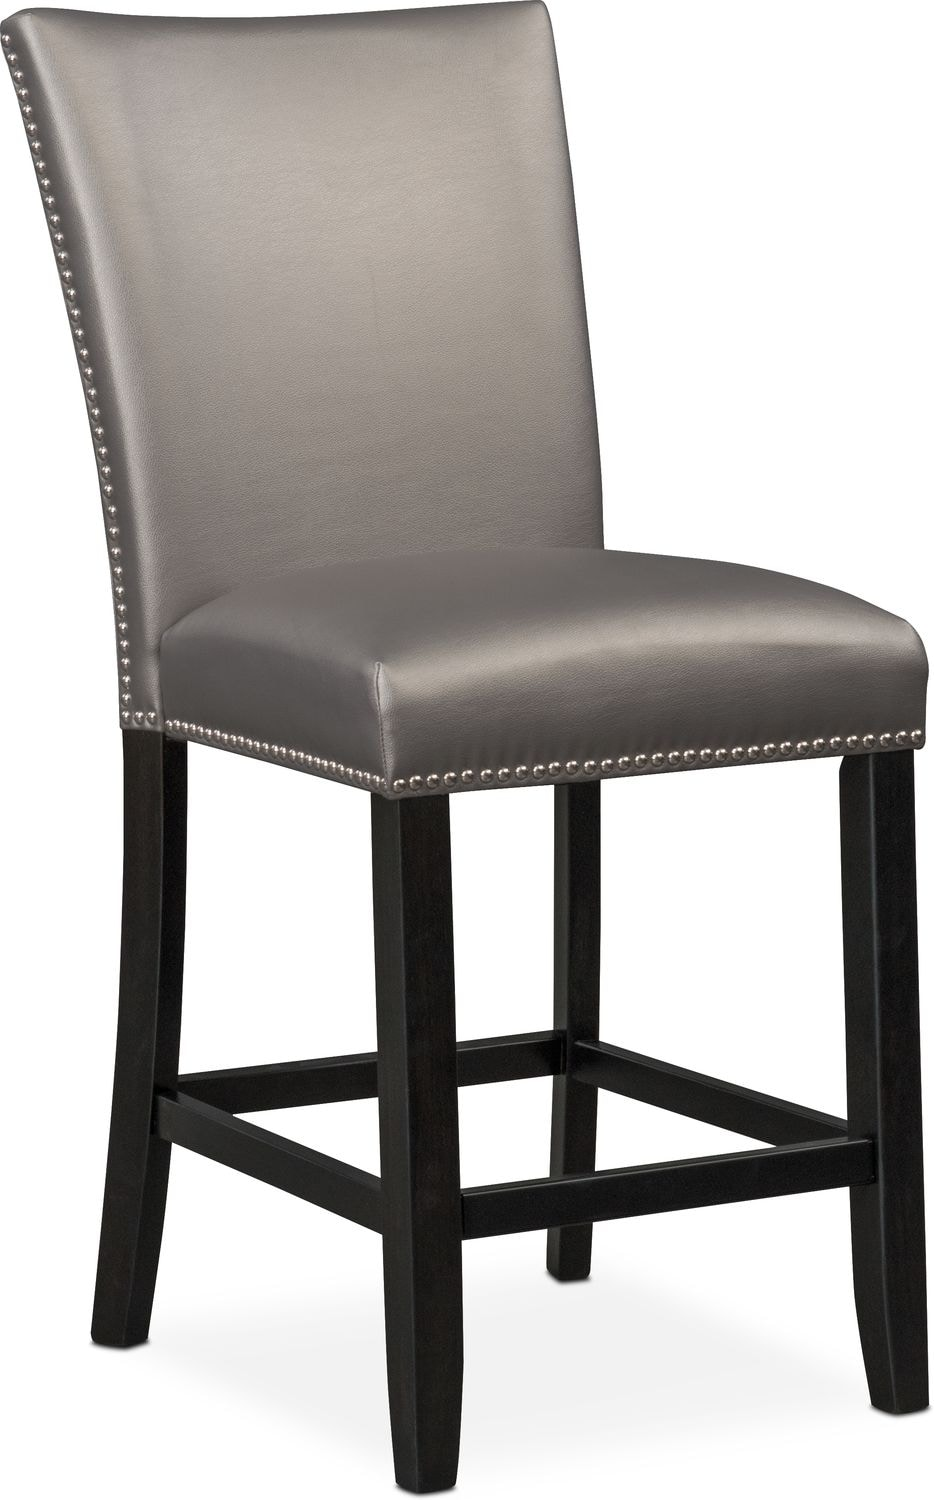 Dining Room Furniture - Artemis Counter-Height Upholstered Stool